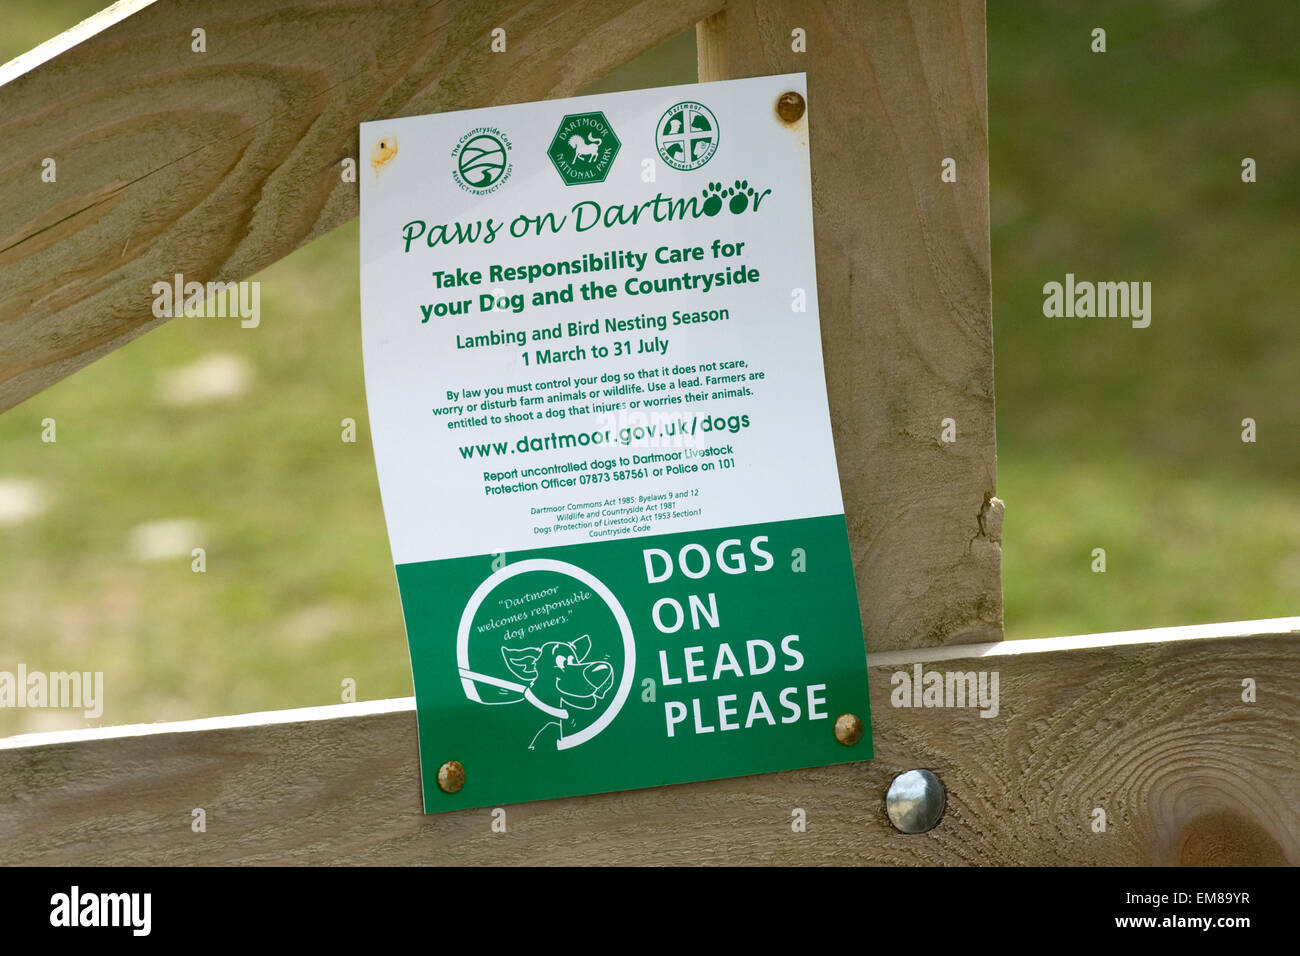 sign for dog walkers on dartmoor - Stock Image